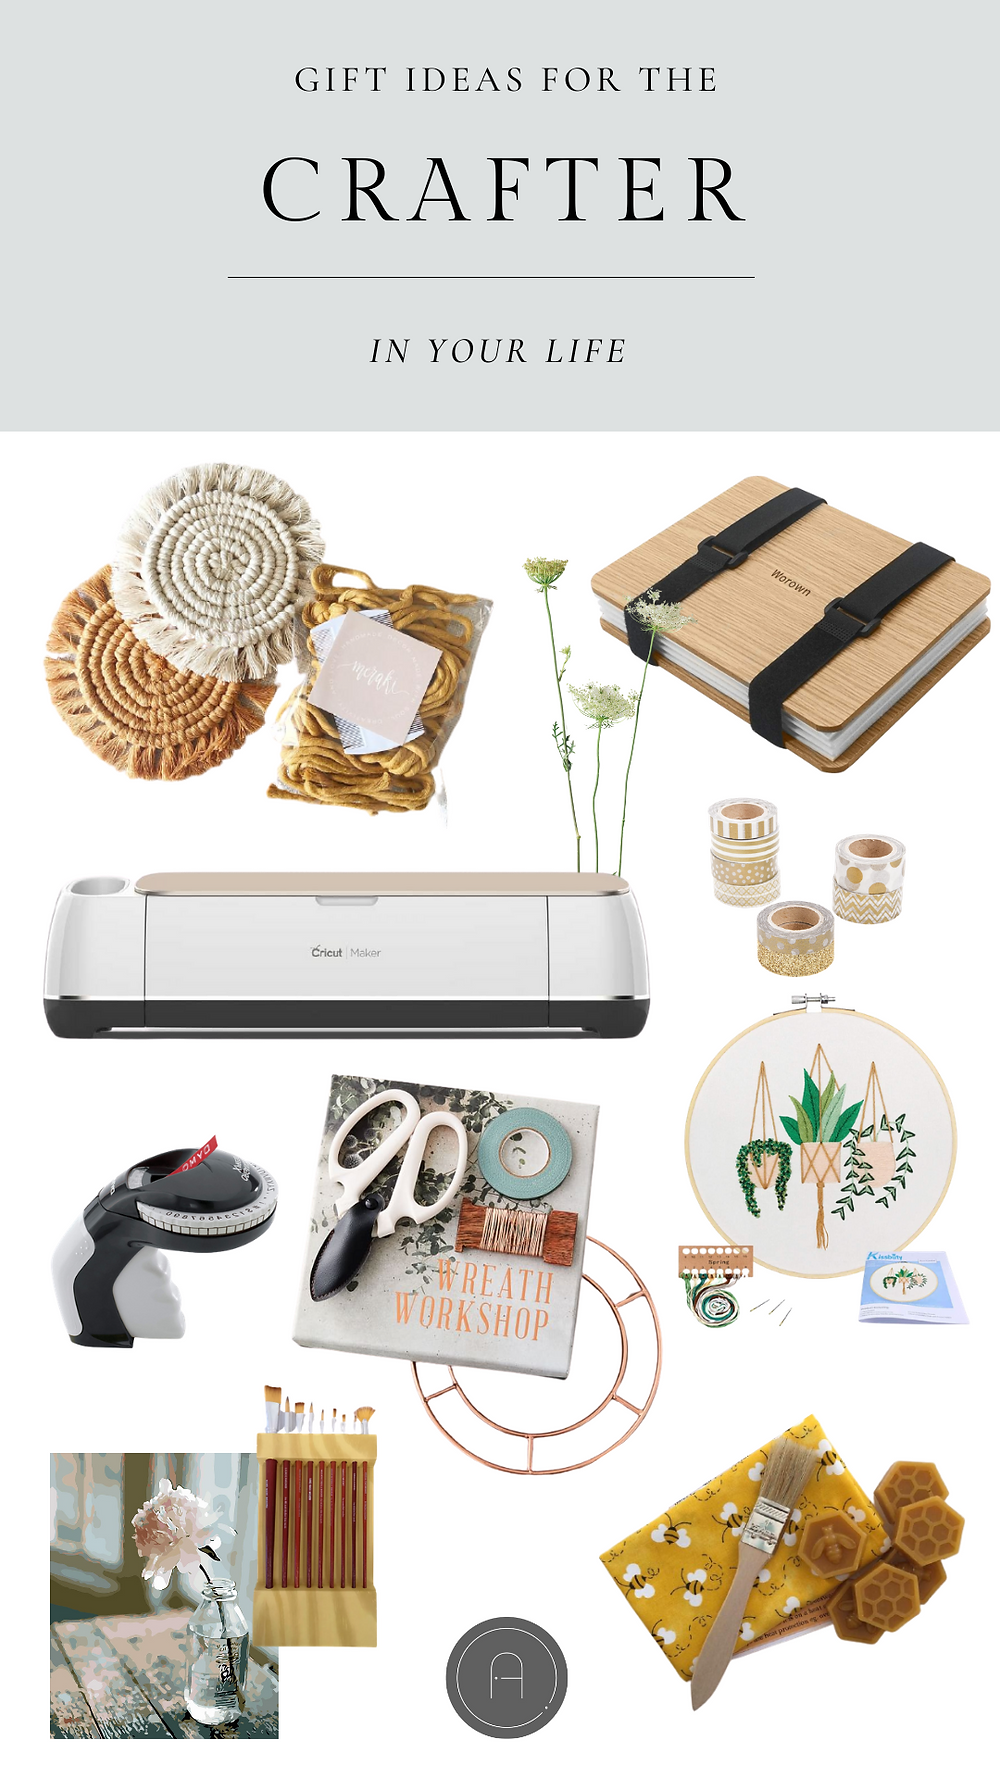 Gift ideas for the foodie in your life sous vide machine cookbook its all good Gweneth Paltrow Anthropologie apron Target whisk brass serving utensils West Elm porcelain egg storage ikea cutting board acacia wood baking mat pretty mixing bowls oil dispenser World Market clever gift holiday shopping best gift ever